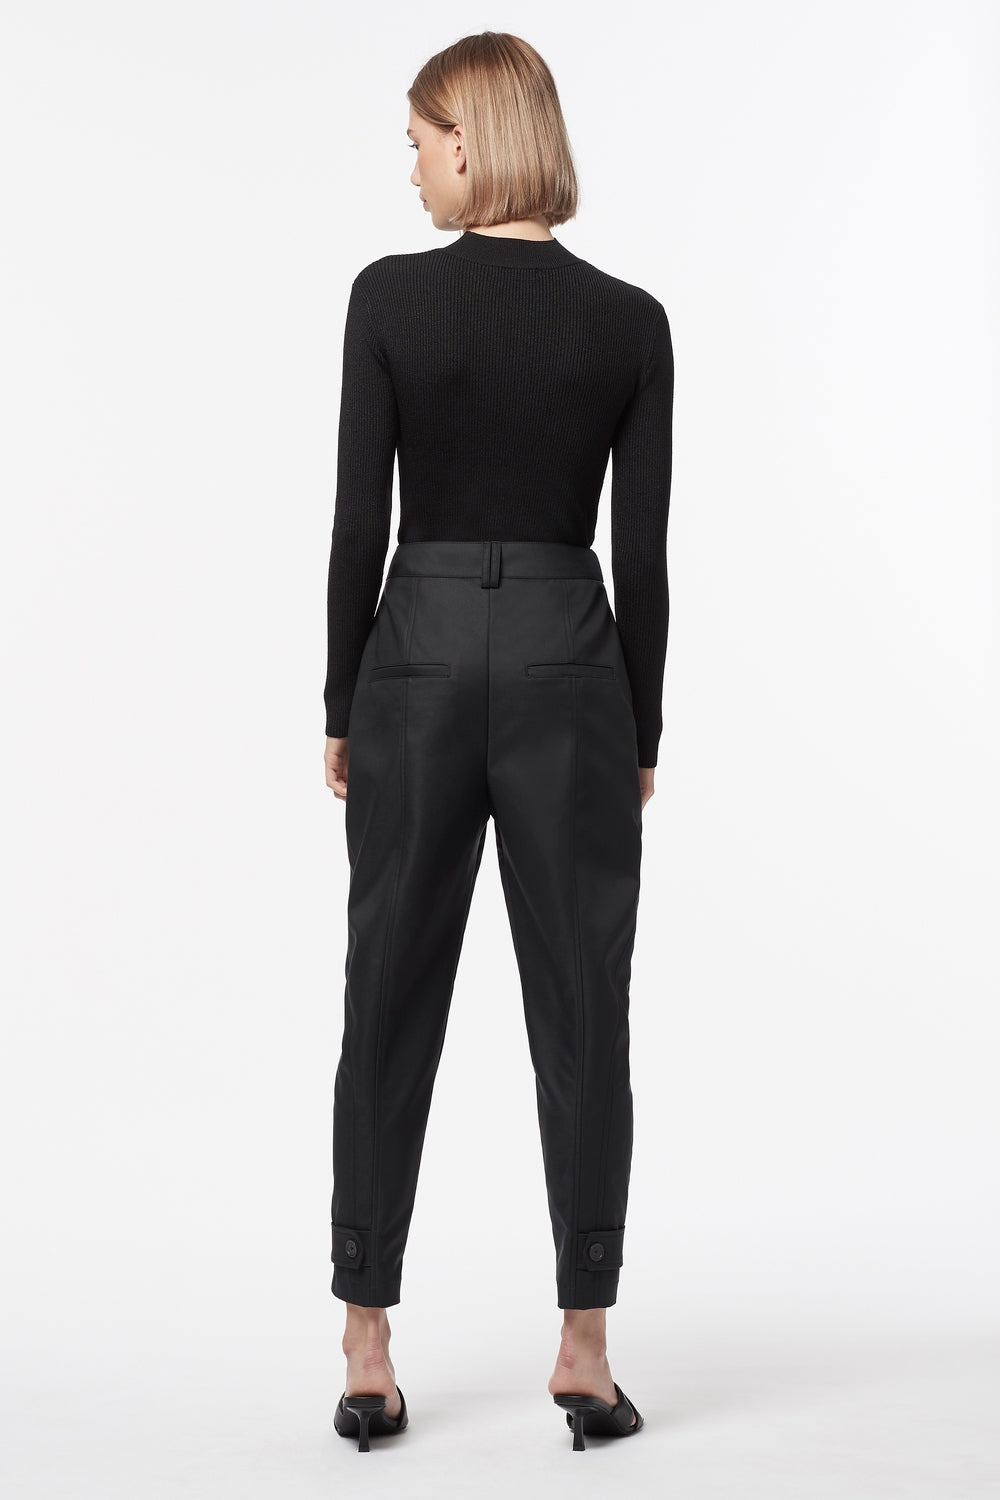 QUICK MARCH CROP PANT